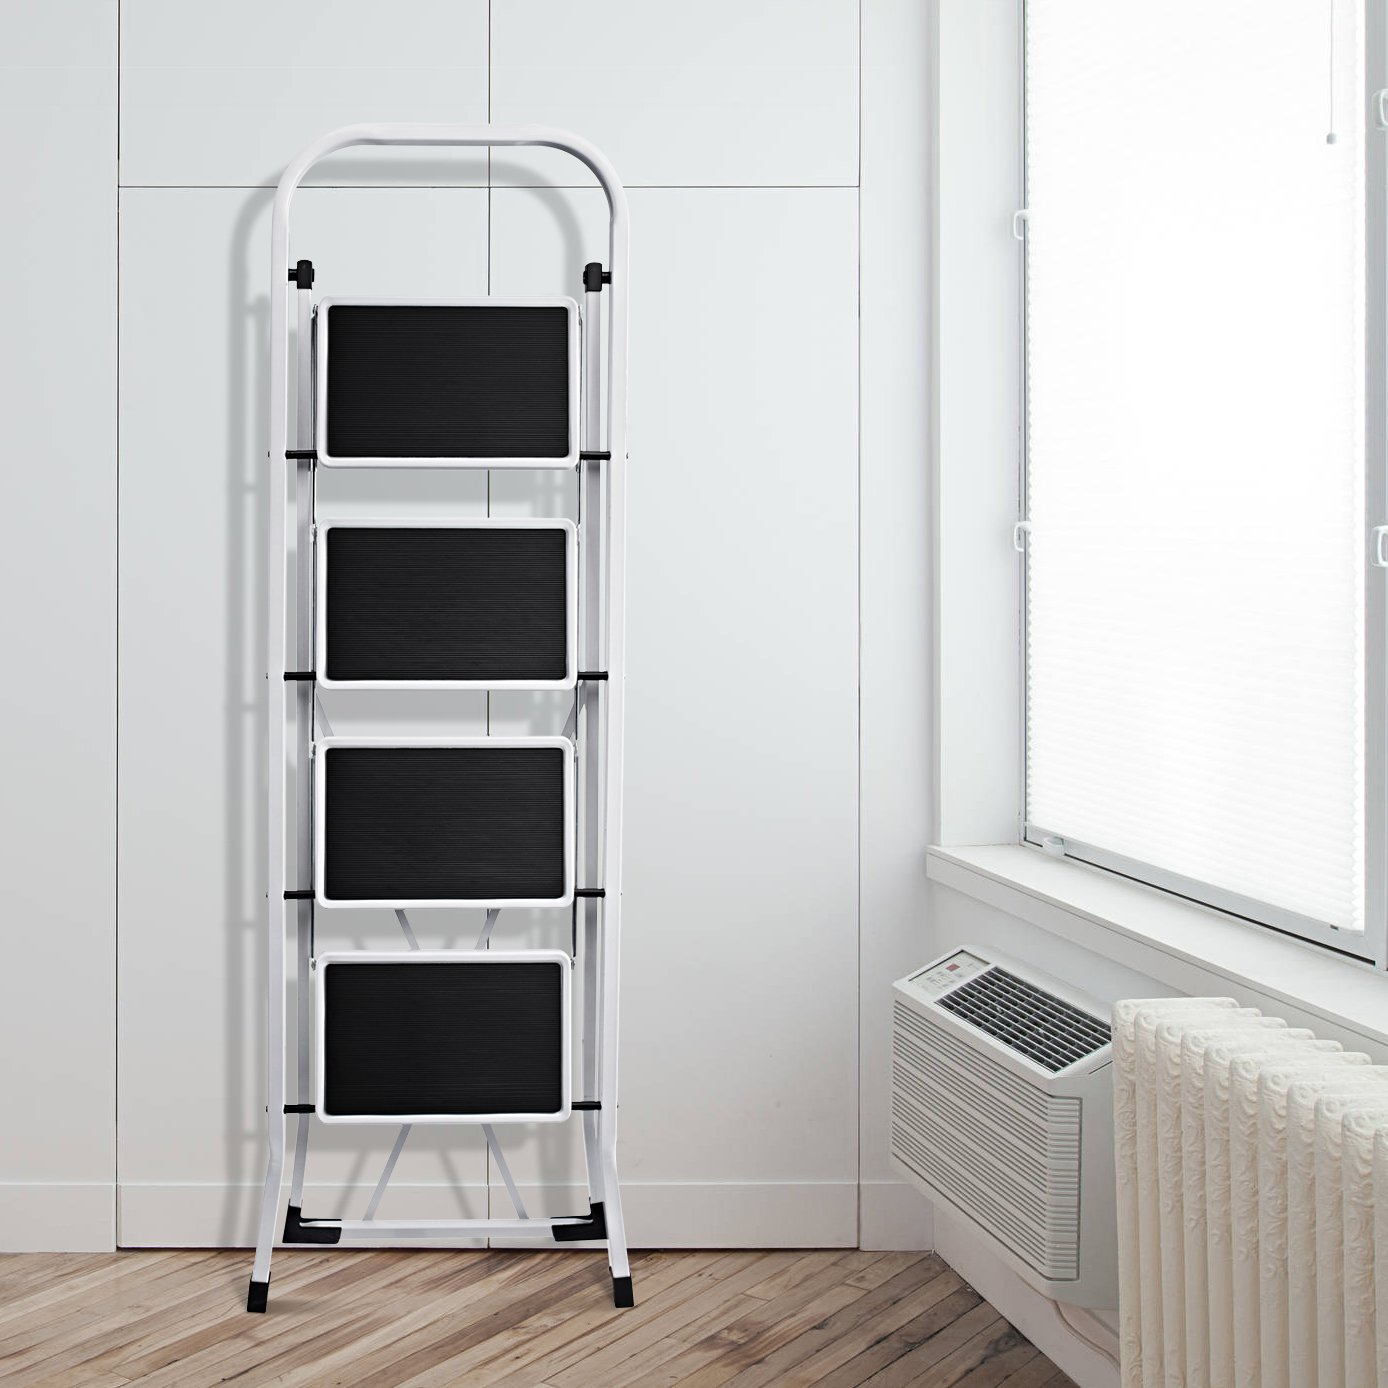 Delxo Folding 4 Step Ladder Ladder With Convenient Handgrip Anti-Slip Sturdy and Wide Pedal 330lbs Portable Steel Step Stool White and Black 4-Feet (WK2040-3) by Delxo (Image #5)